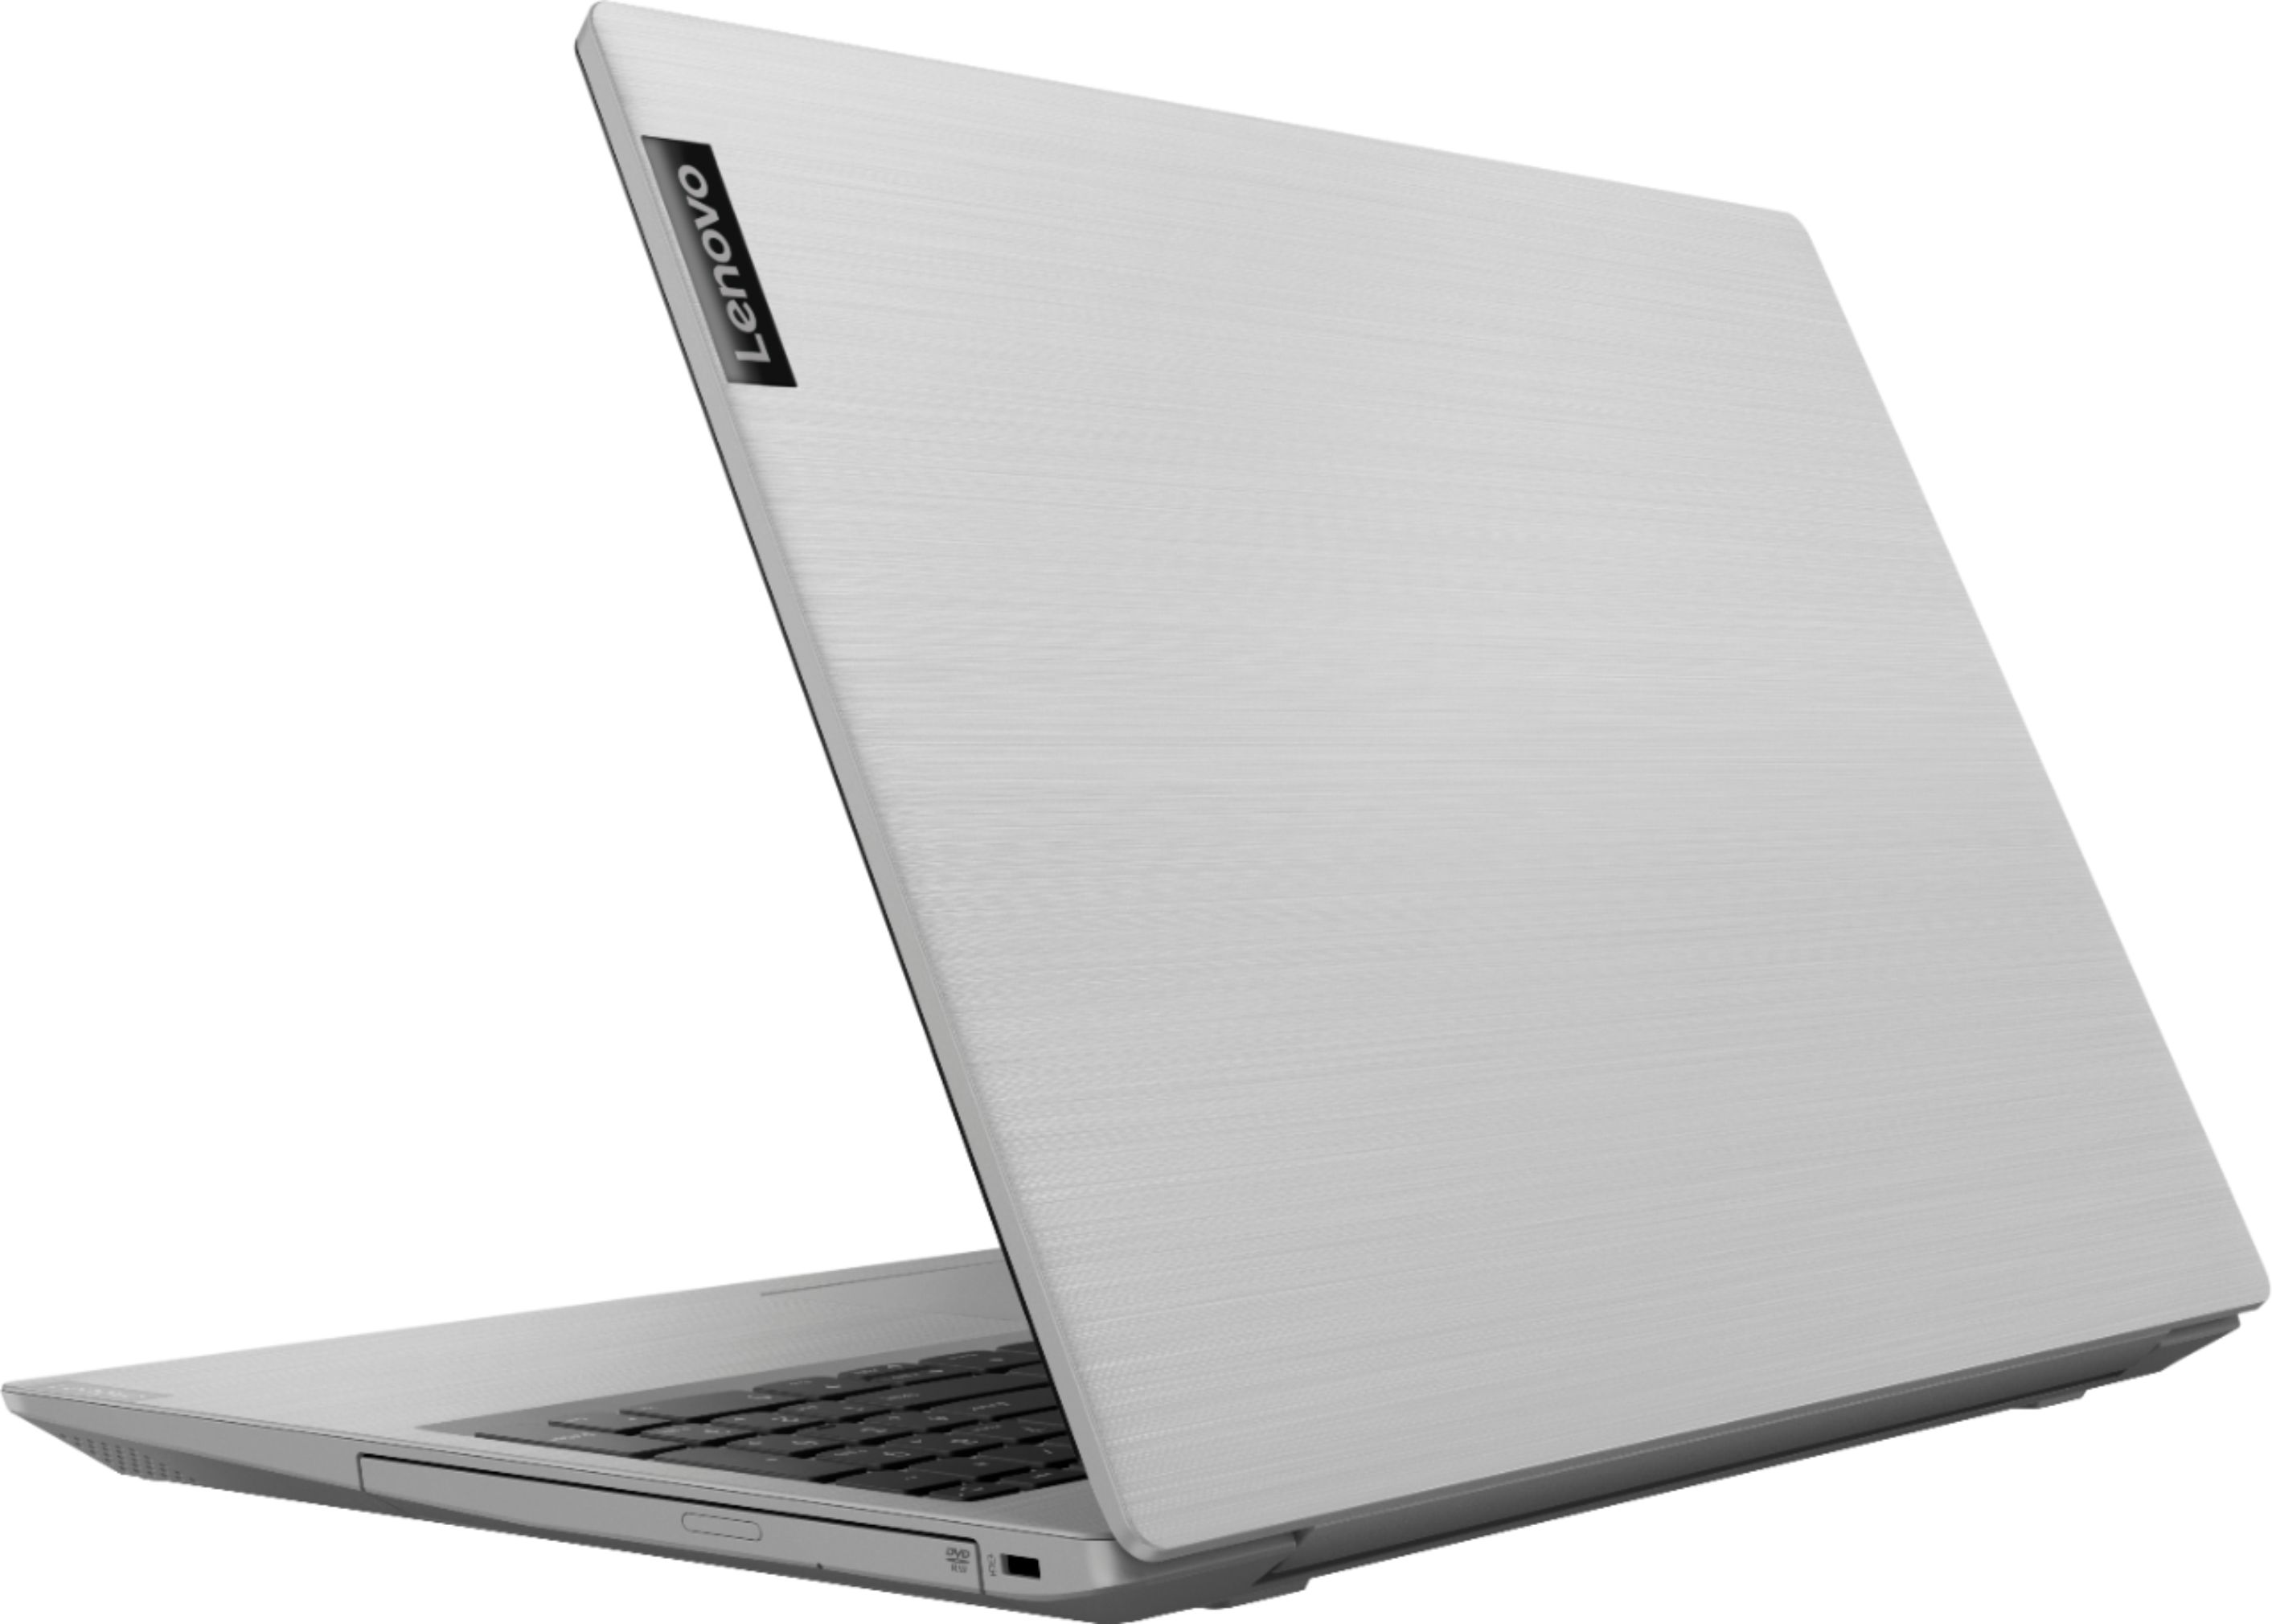 "Alt View Zoom 1. Lenovo - Geek Squad Certified Refurbished L340-15API 15.6"" Laptop - AMD Ryzen 3 - 8GB Memory - 1TB HDD - Platinum Gray."